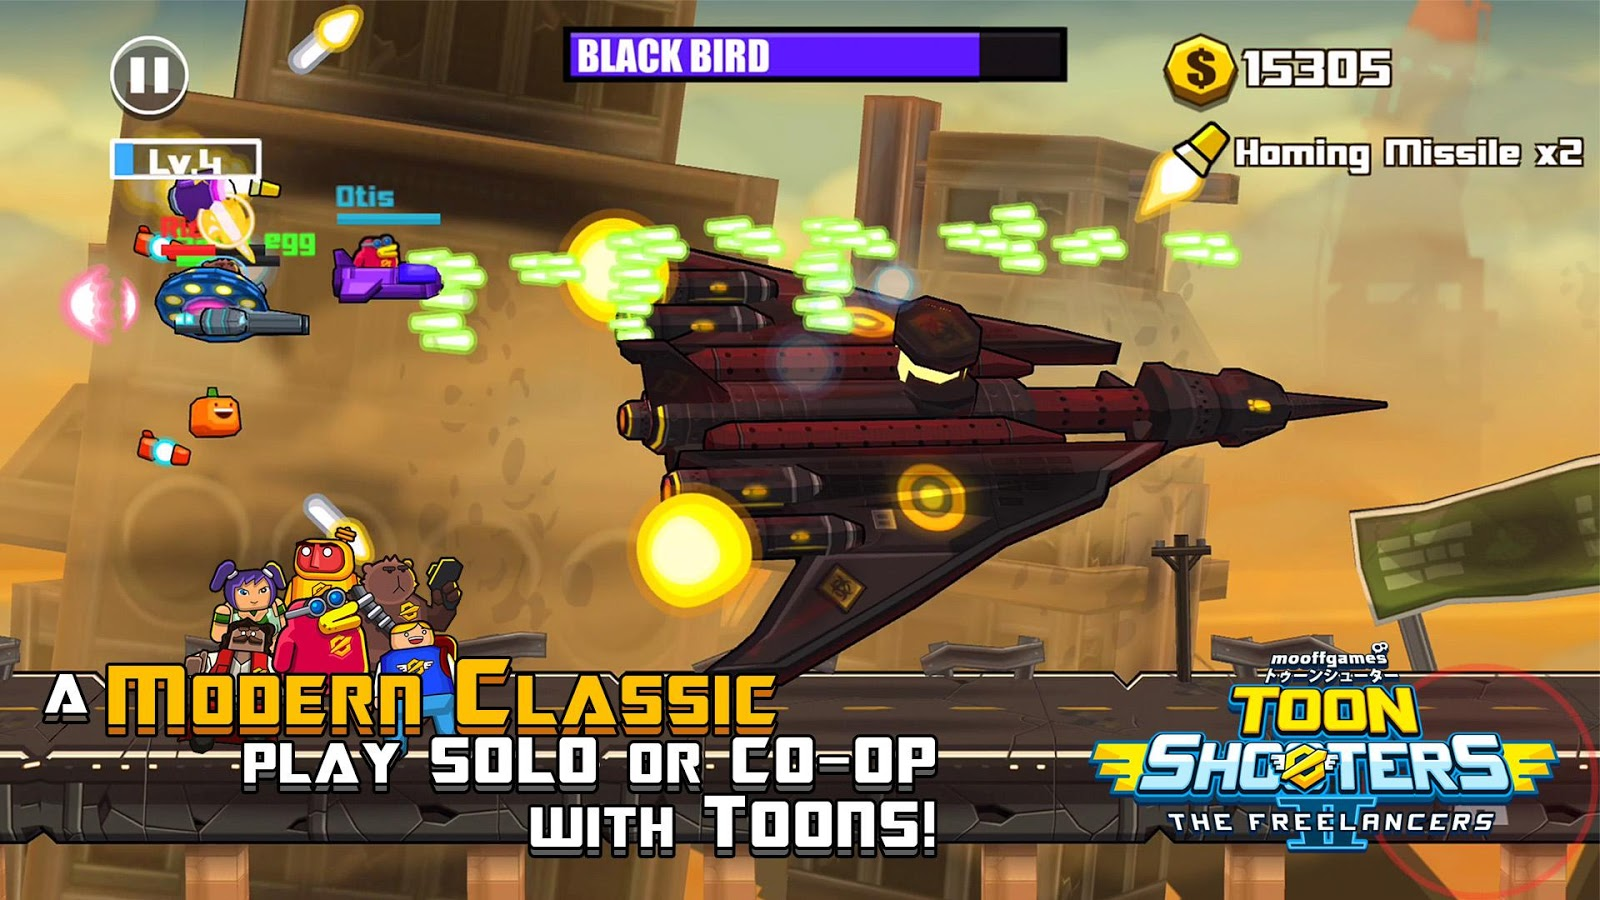 Toon Shooters 2: Freelancers Screenshot 0